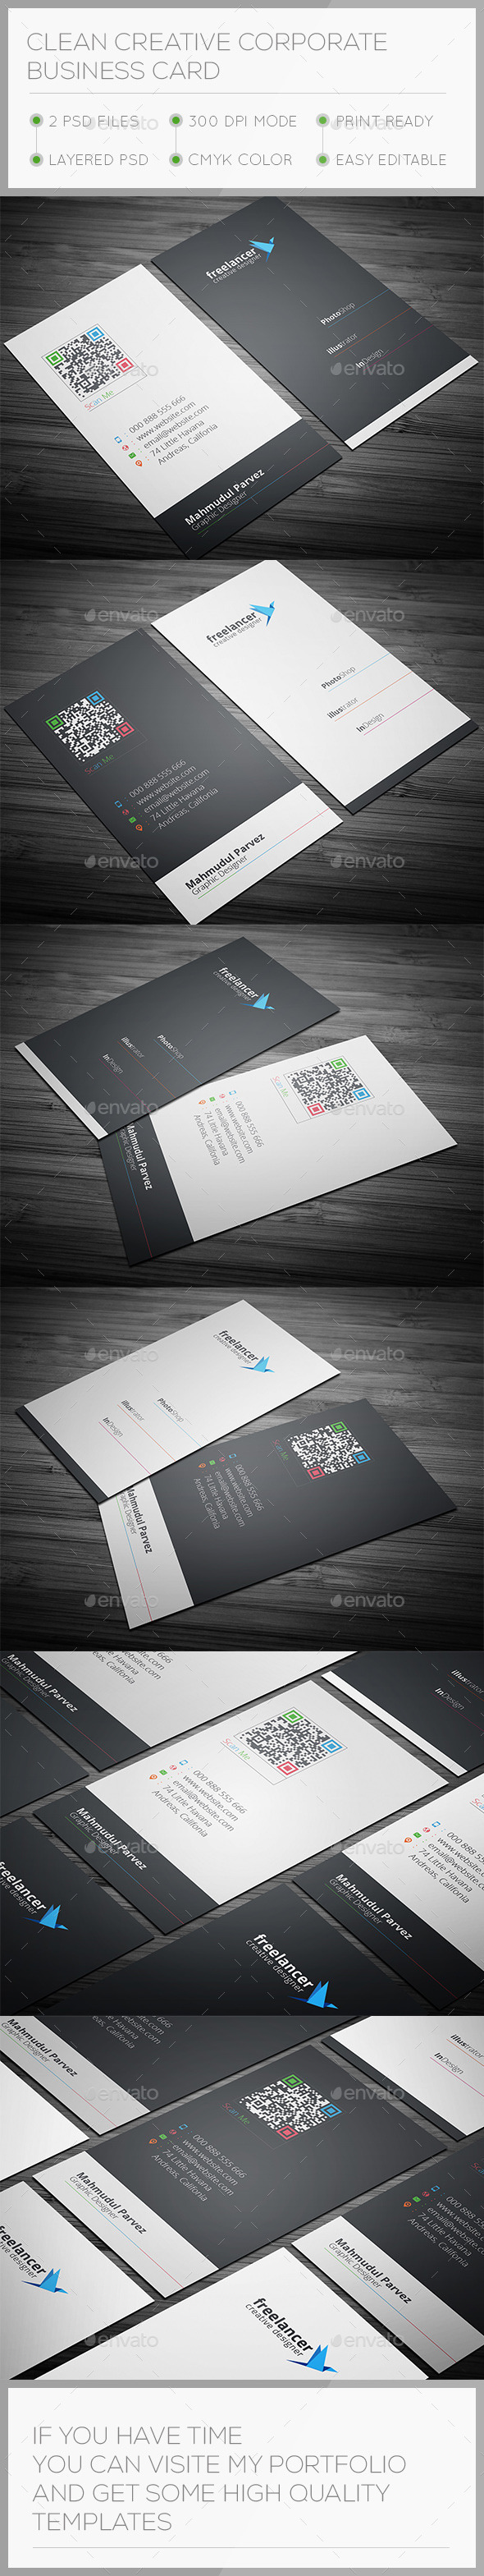 GraphicRiver Clean & Creative Business Card 9595304